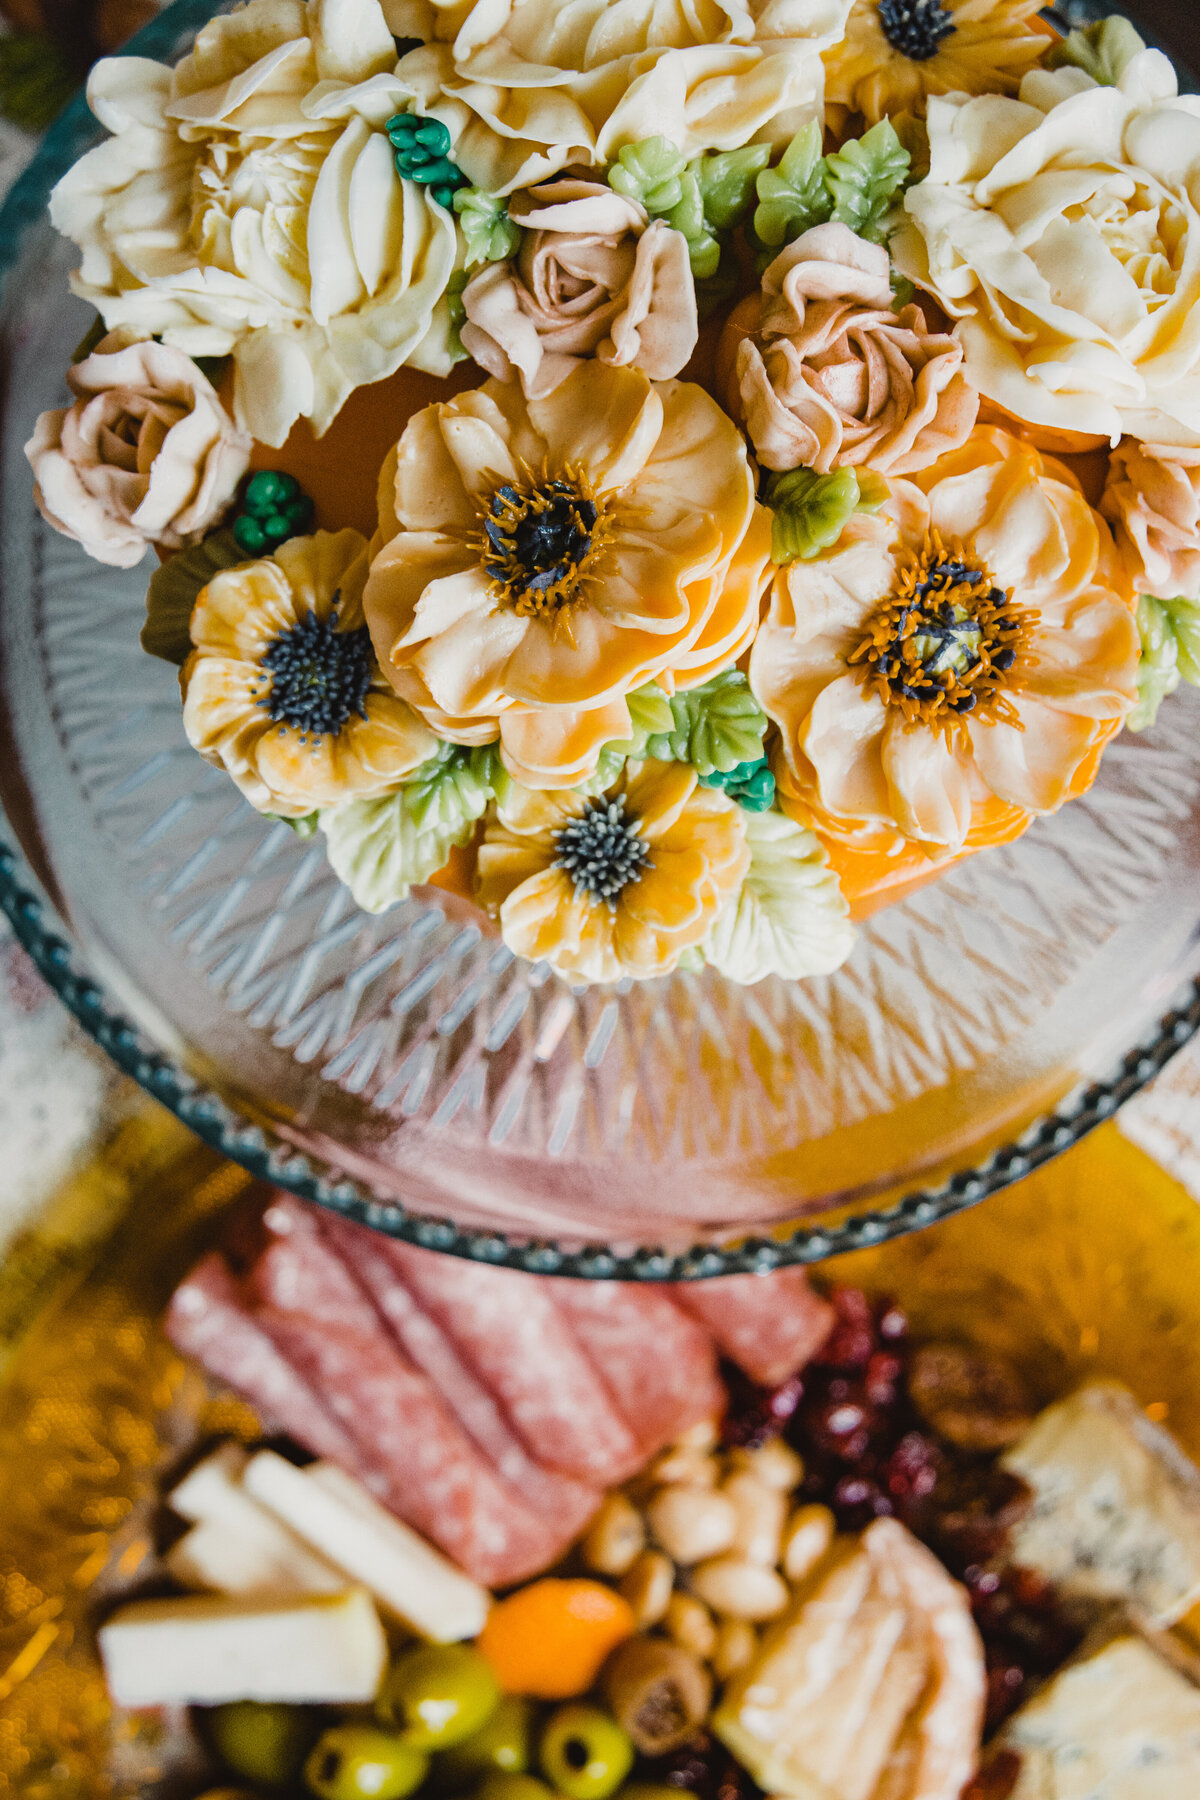 Wedding Cakes in Leesburg, Virginia